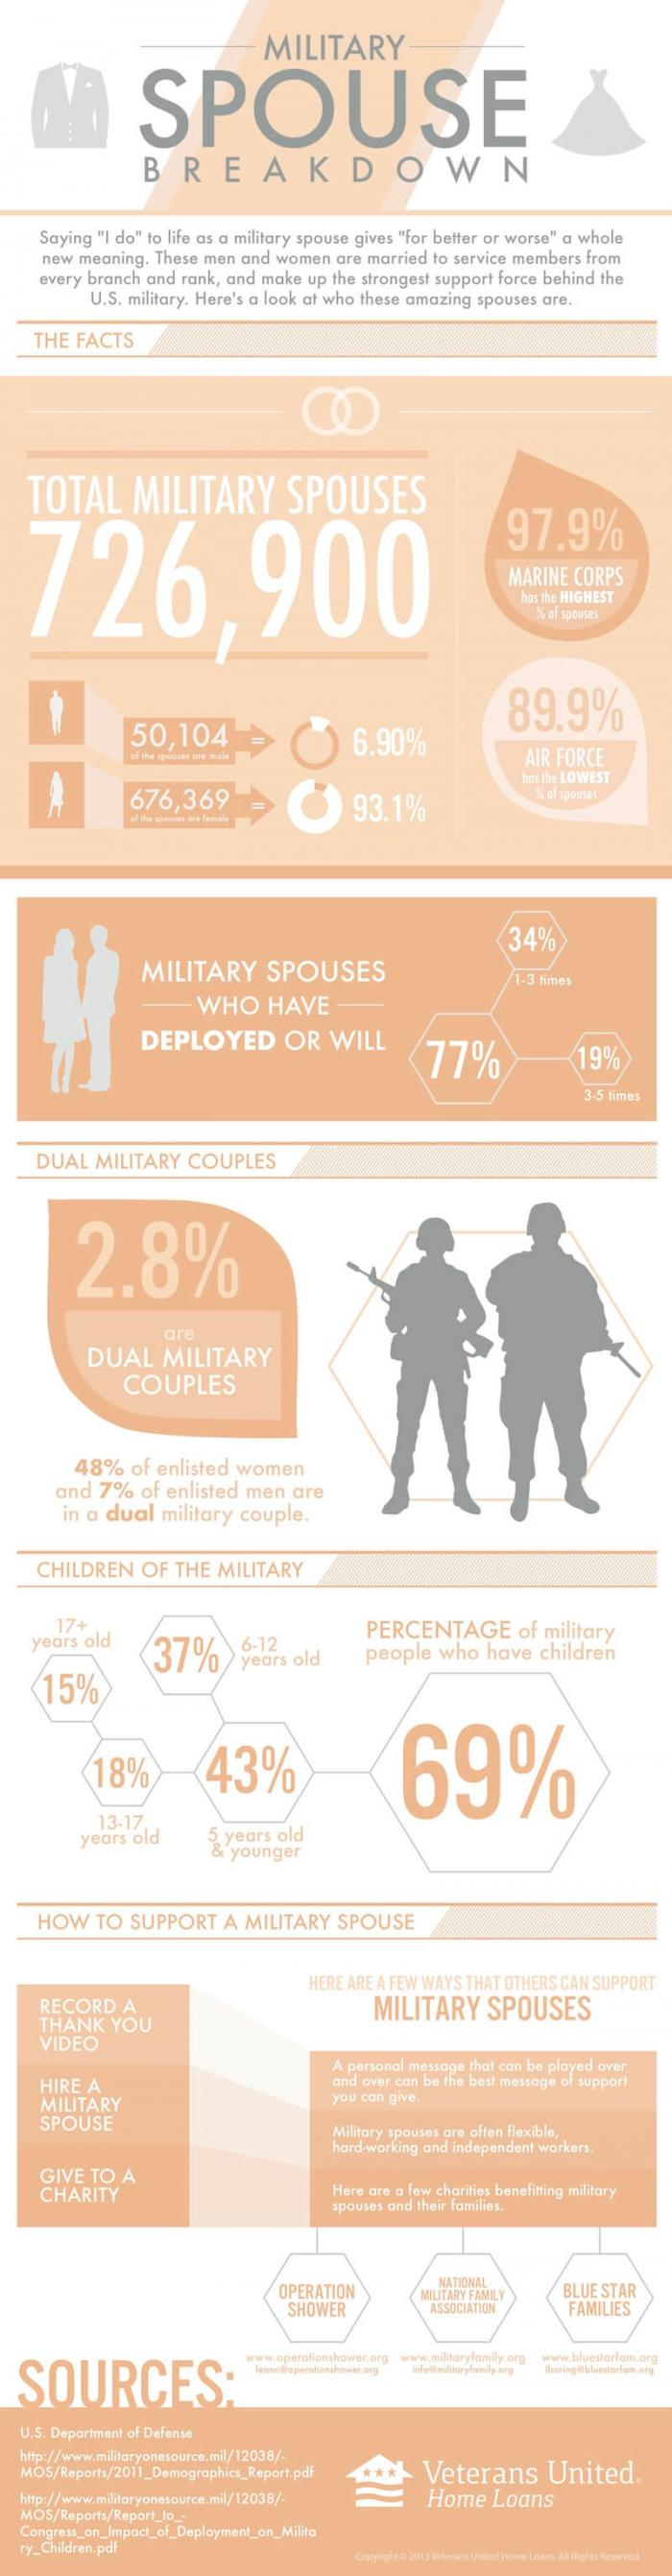 military-spouse-breakdown-infographic